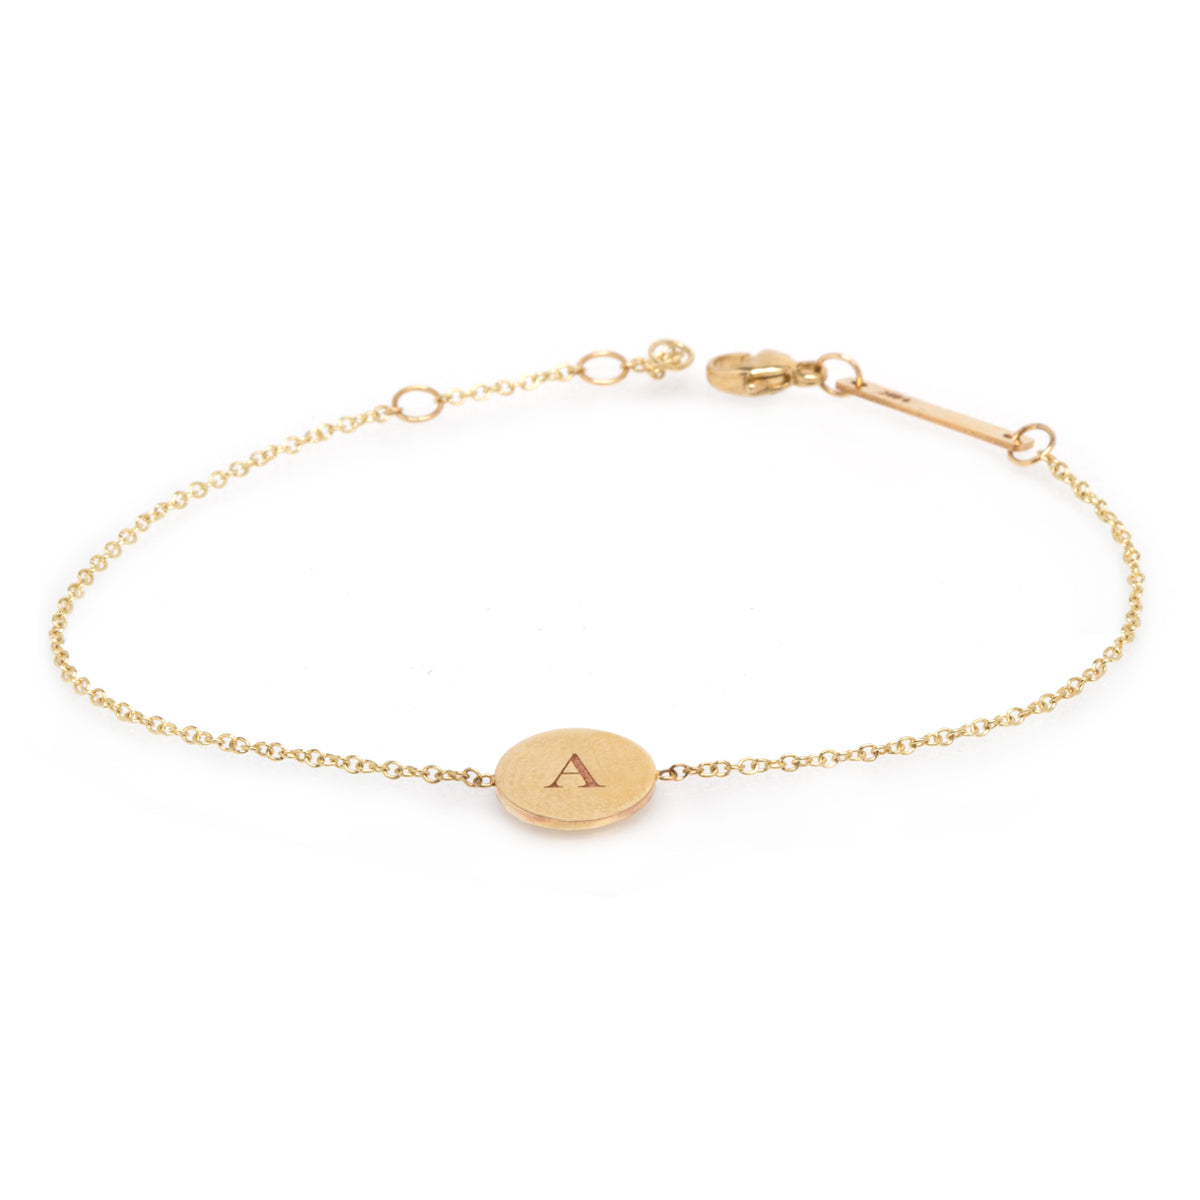 14k small disc bracelet with single initial engraved